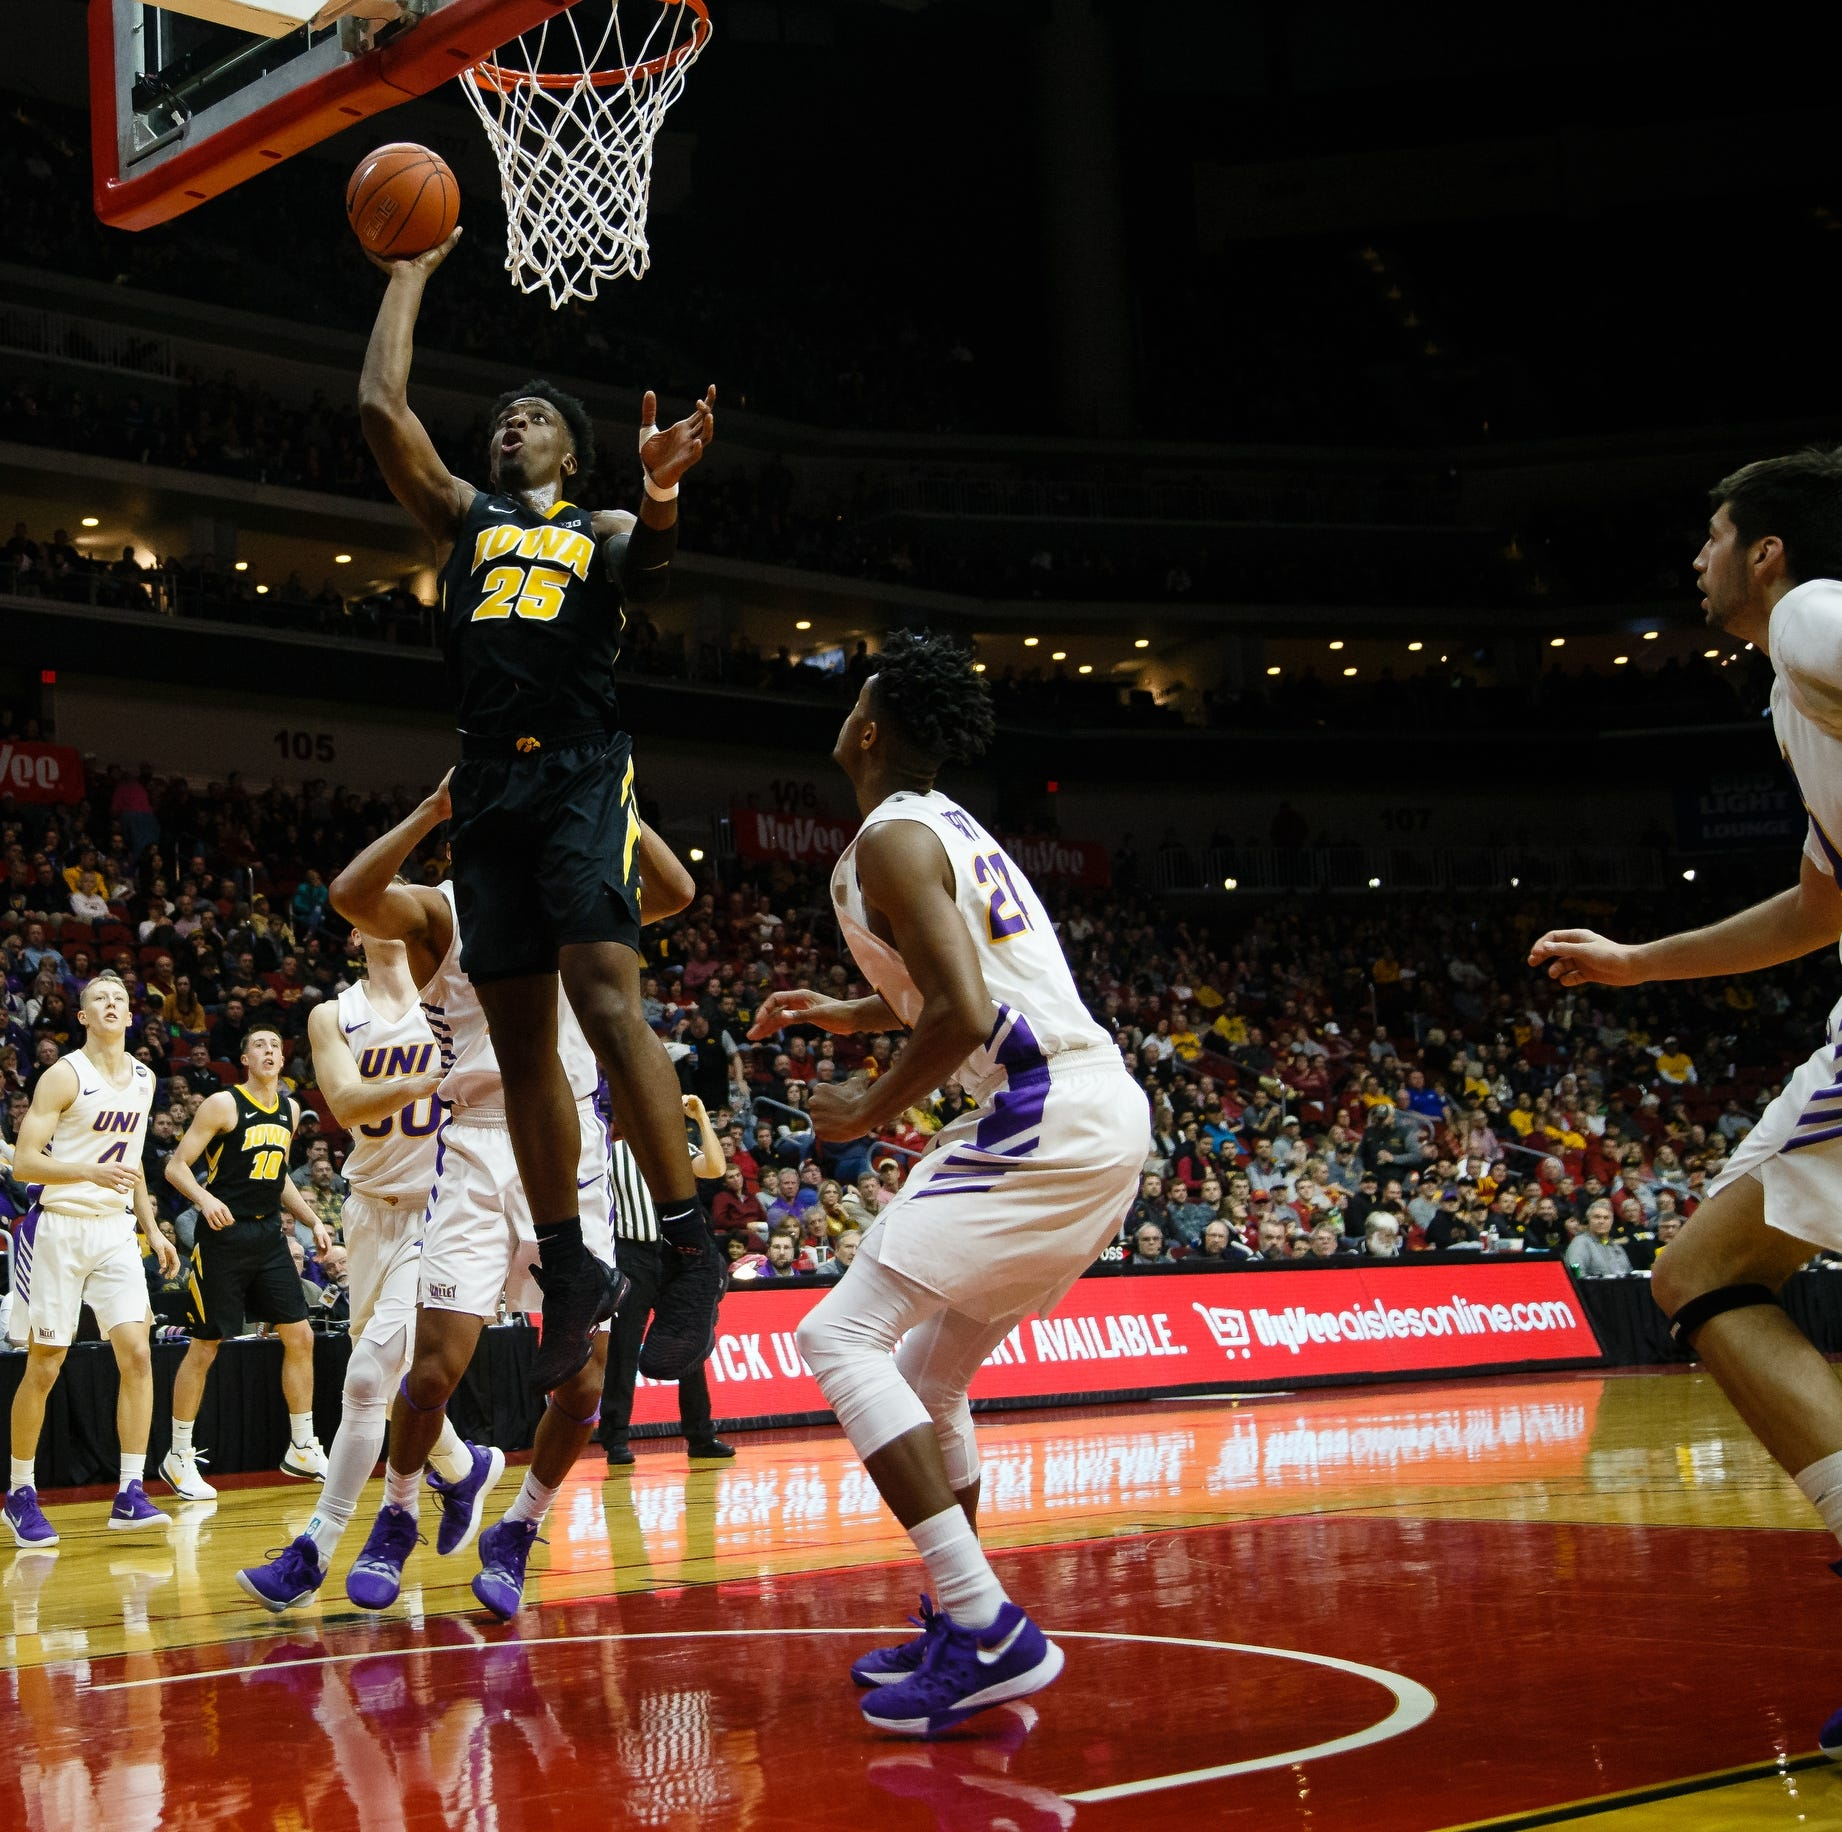 Emmert's Thoughts: Iowa's Bohannon ushers win with gritty defense on UNI's Green